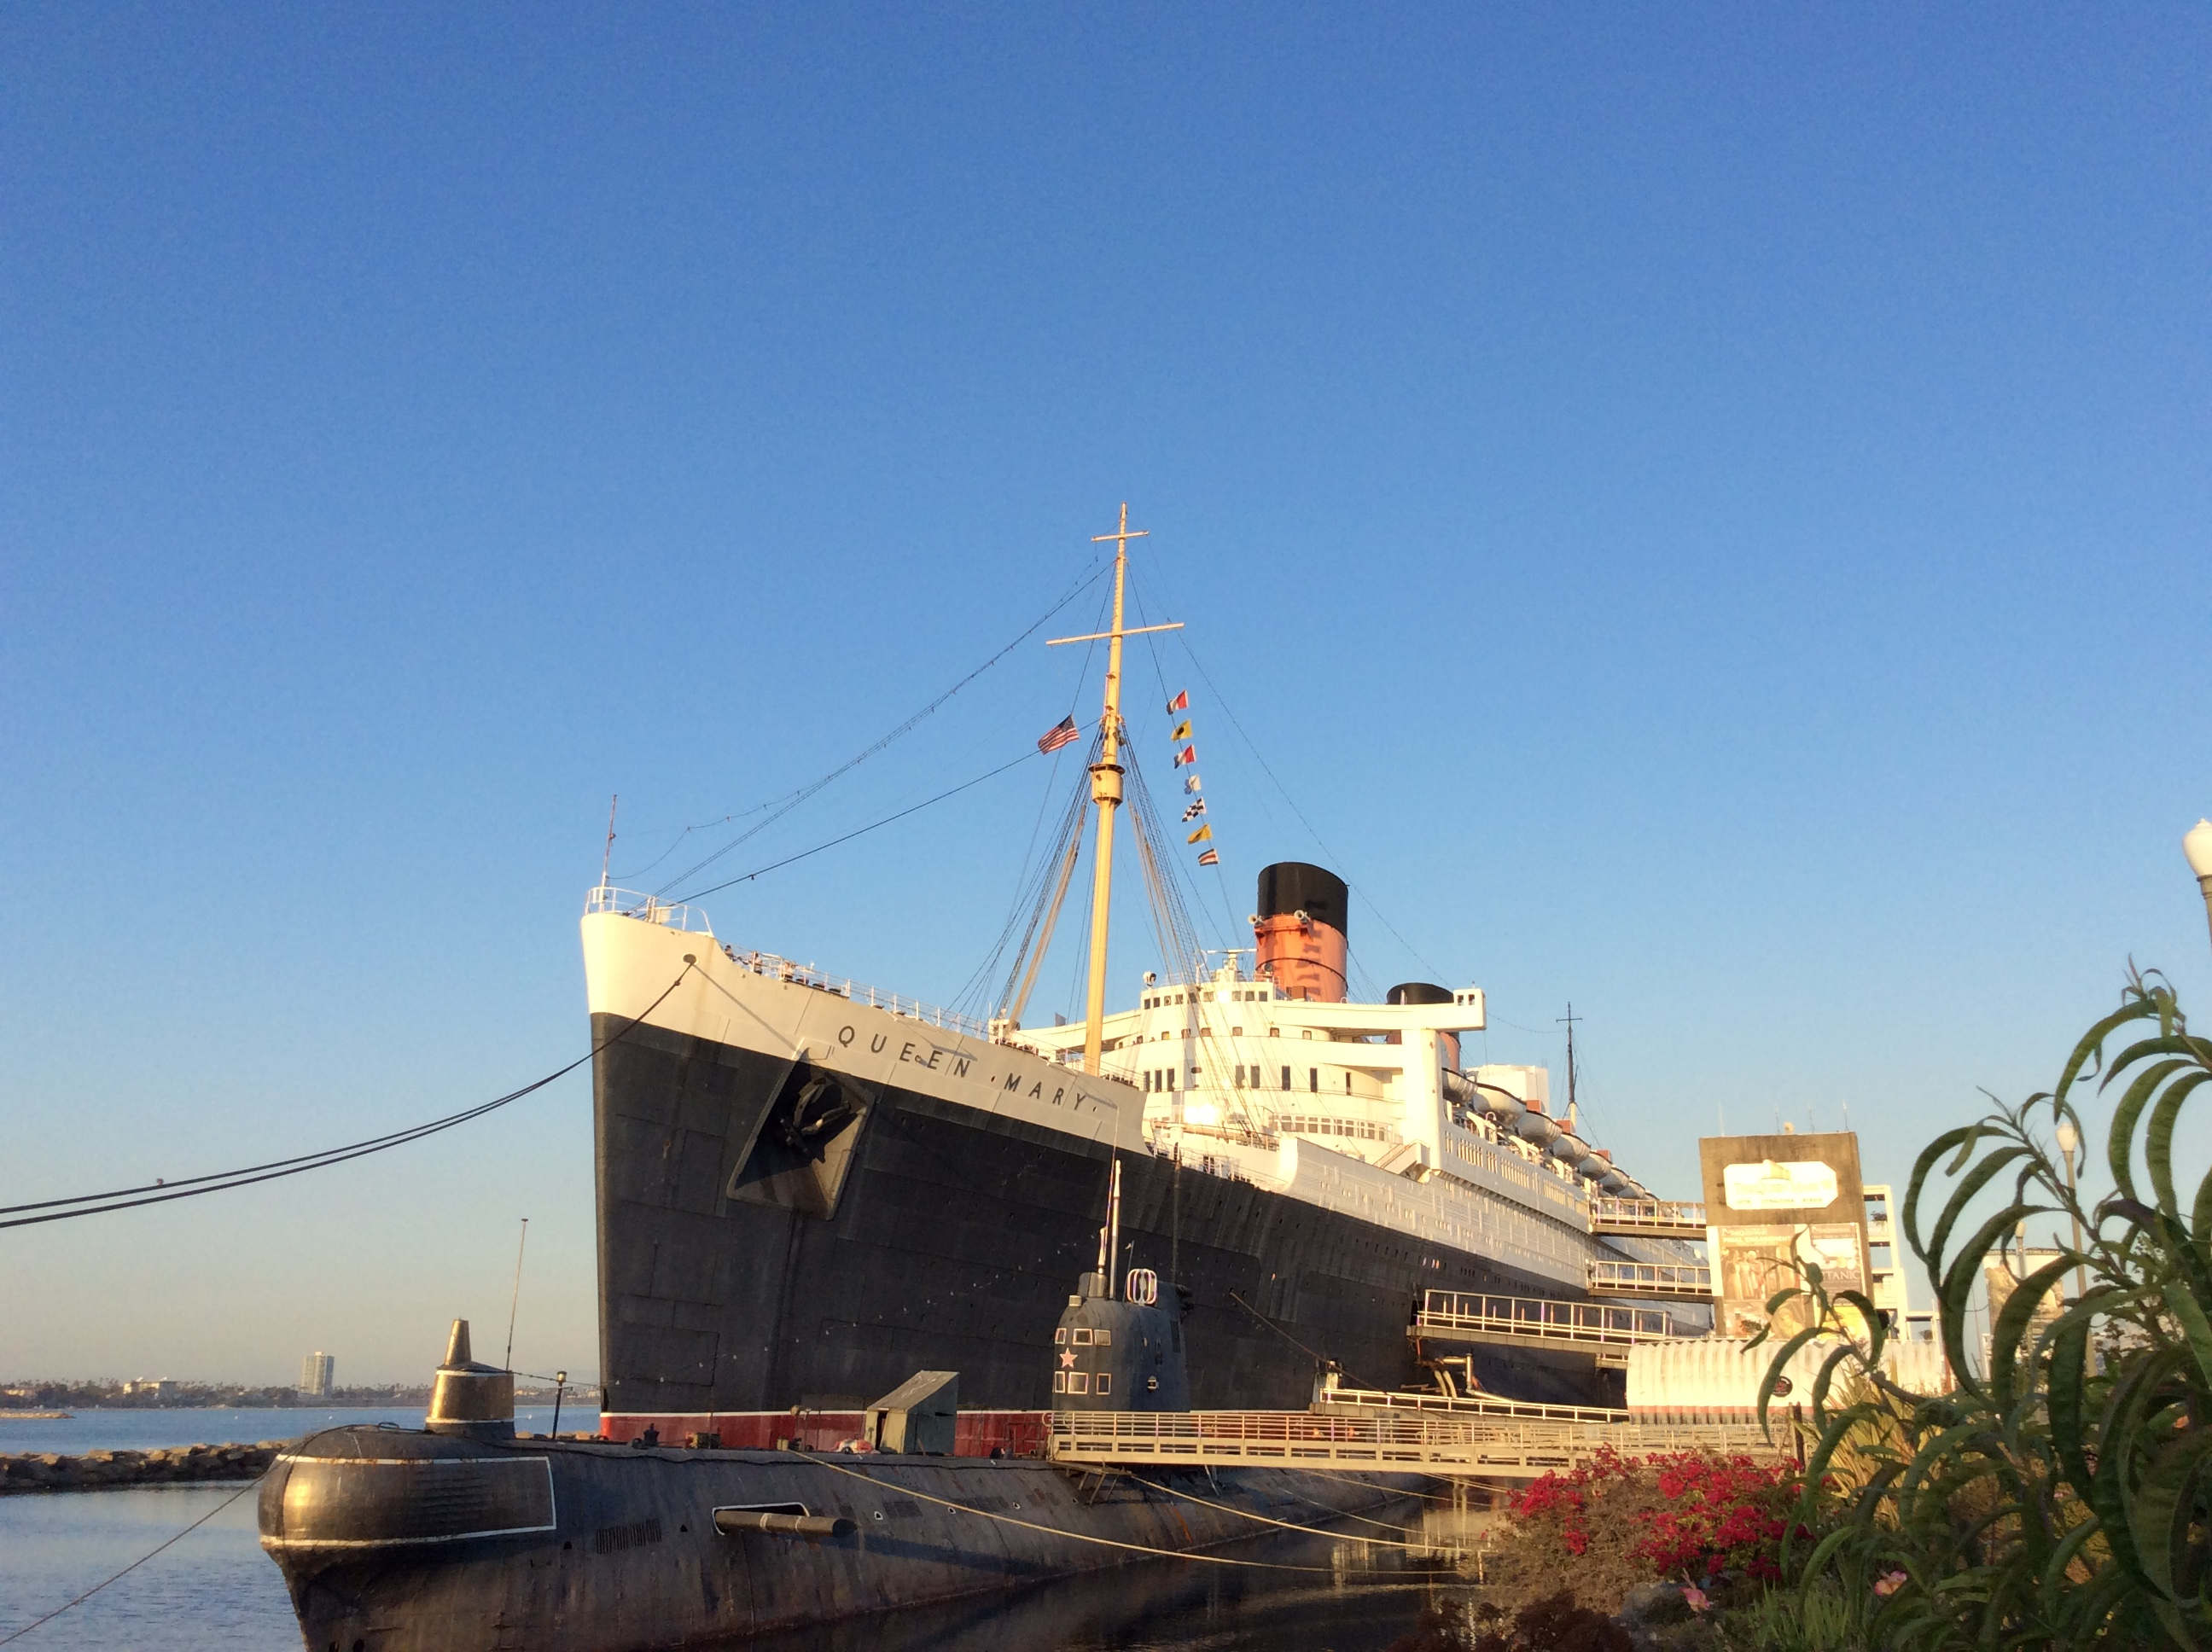 Cooking for Ghosts on the RMS Queen Mary